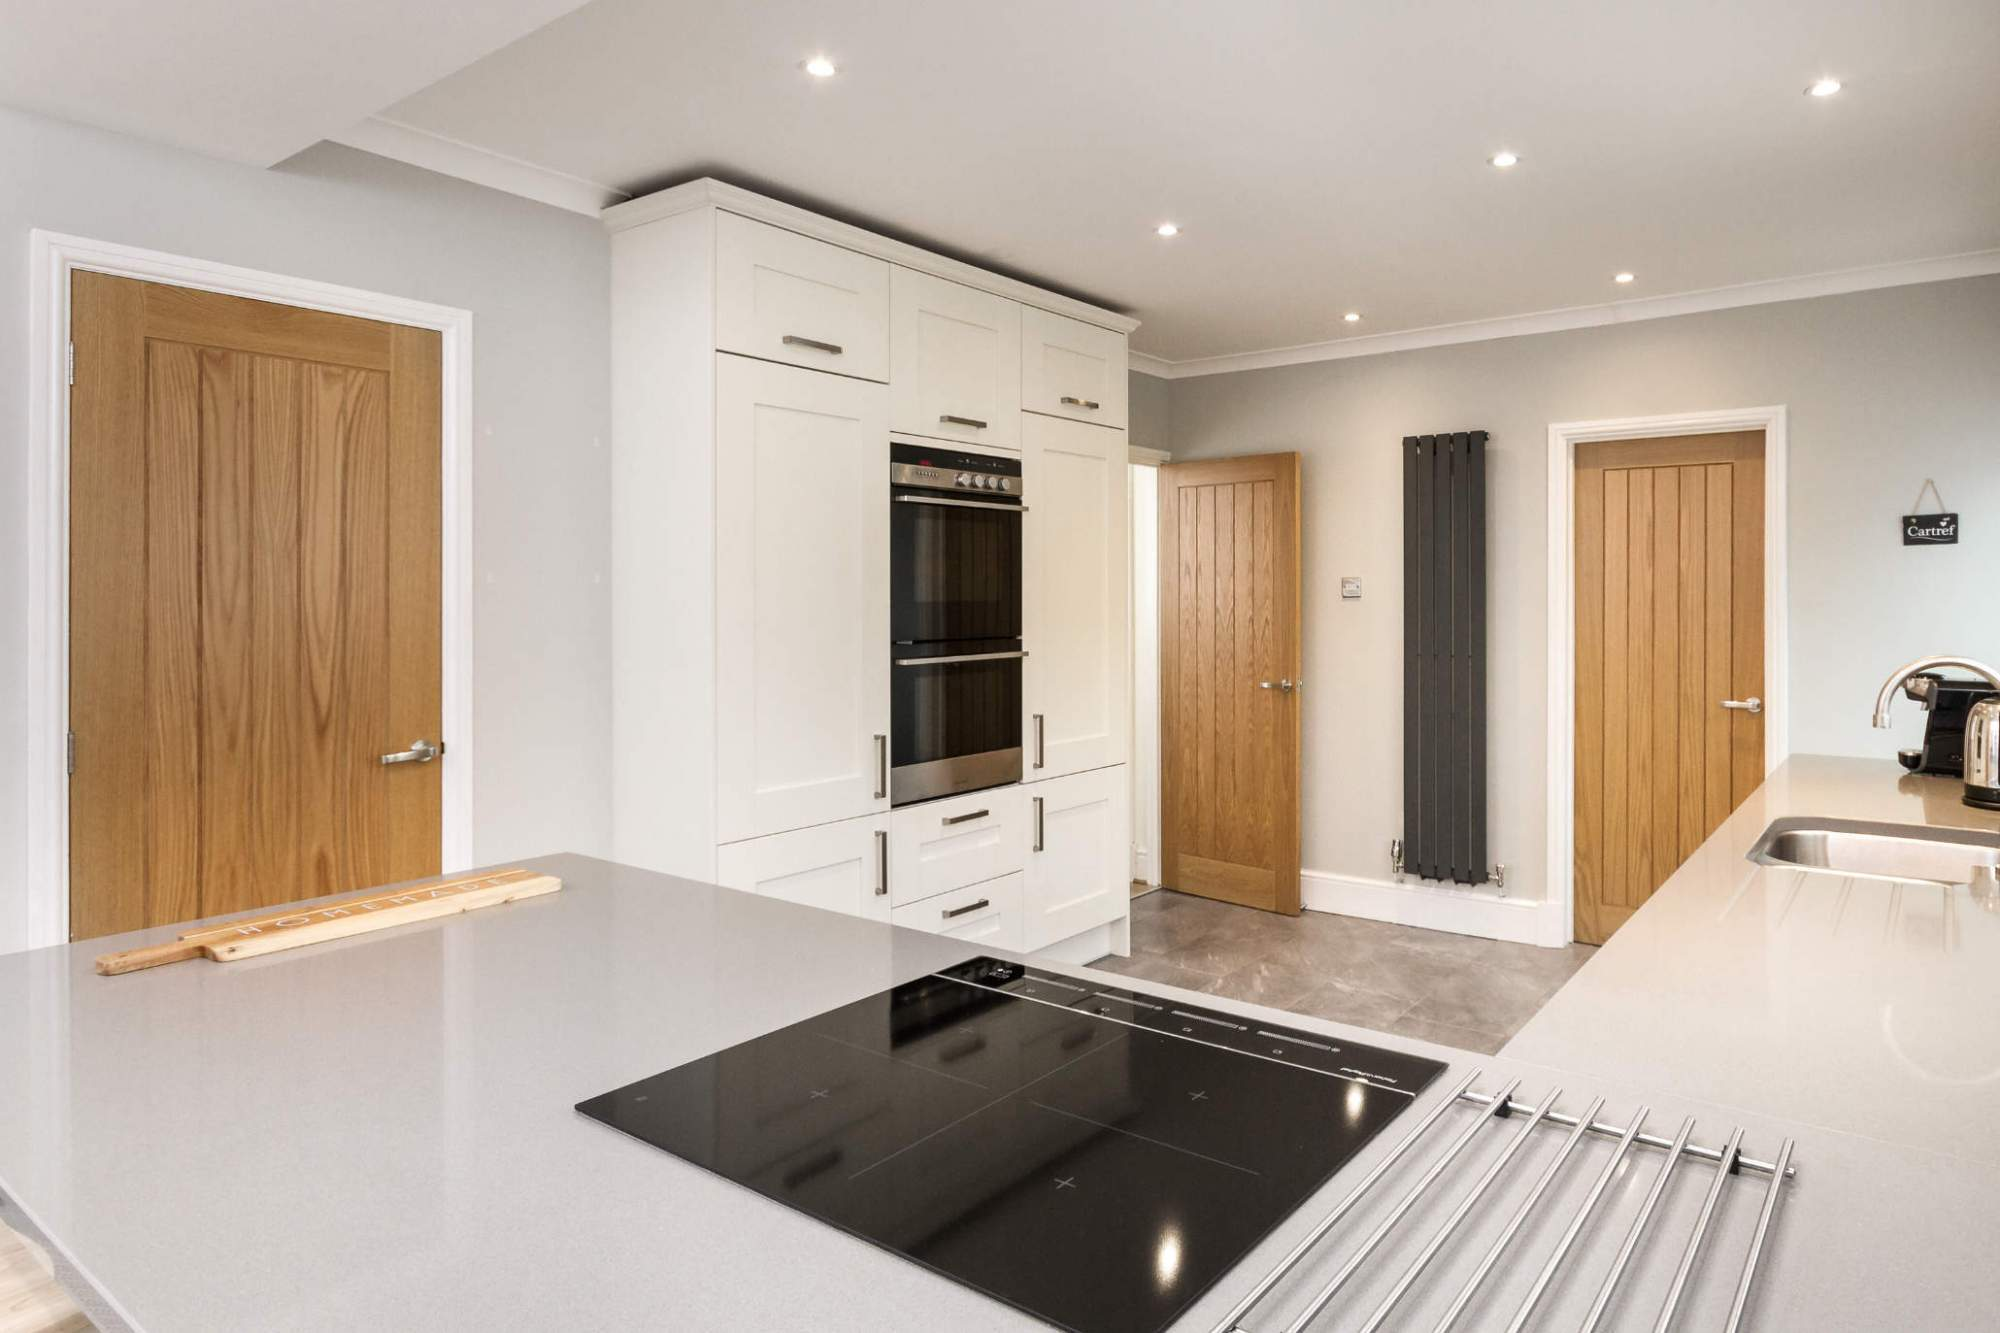 Sully kitchen design